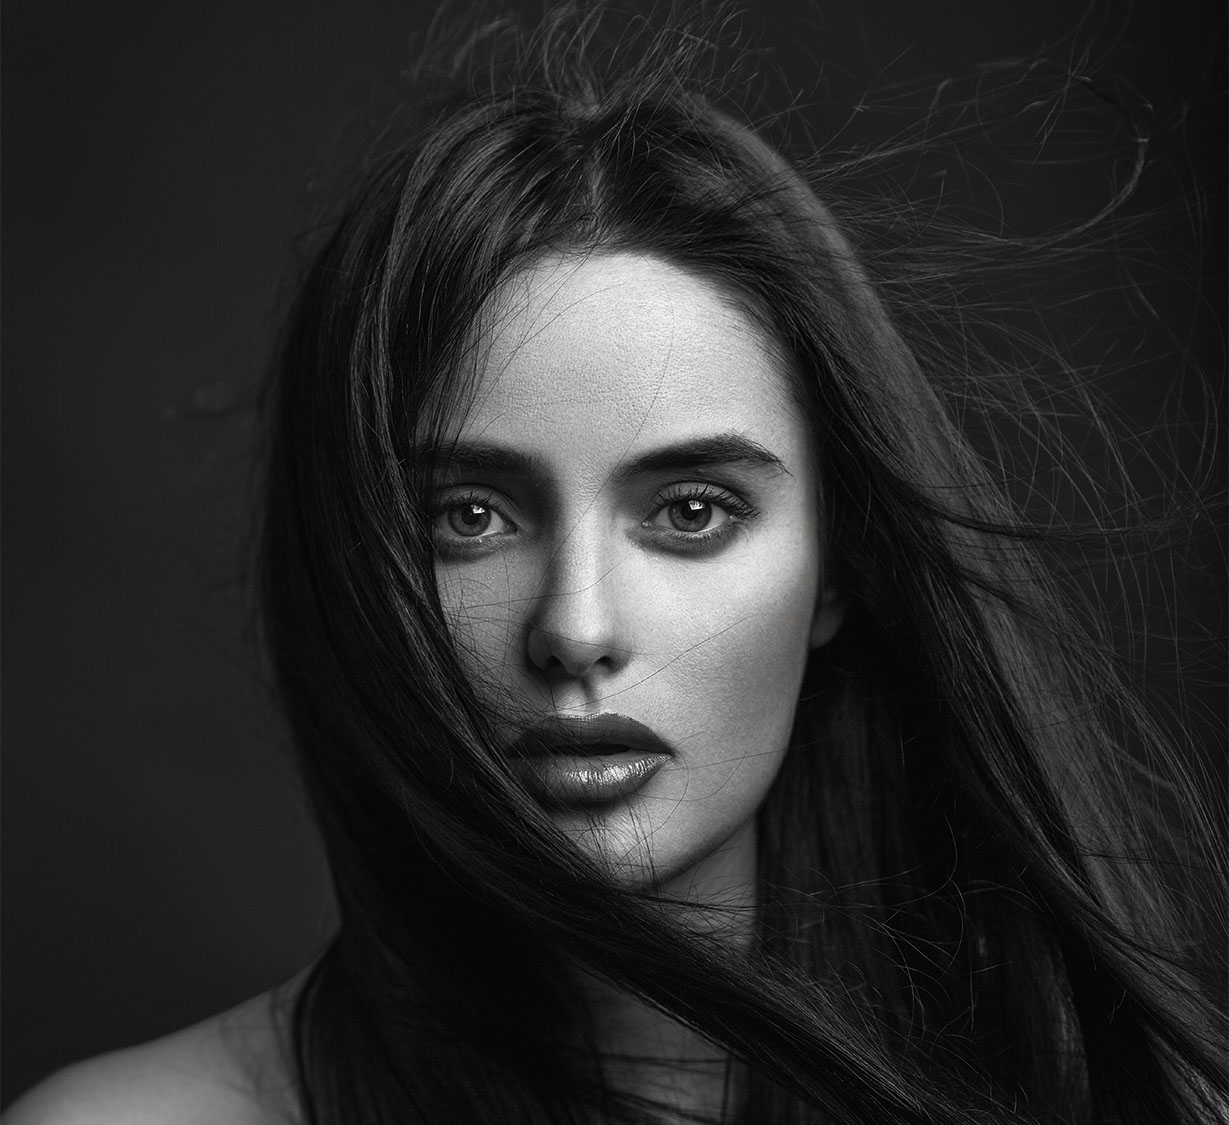 Sultry young woman's face and even skin tone with windswept hair black & white image